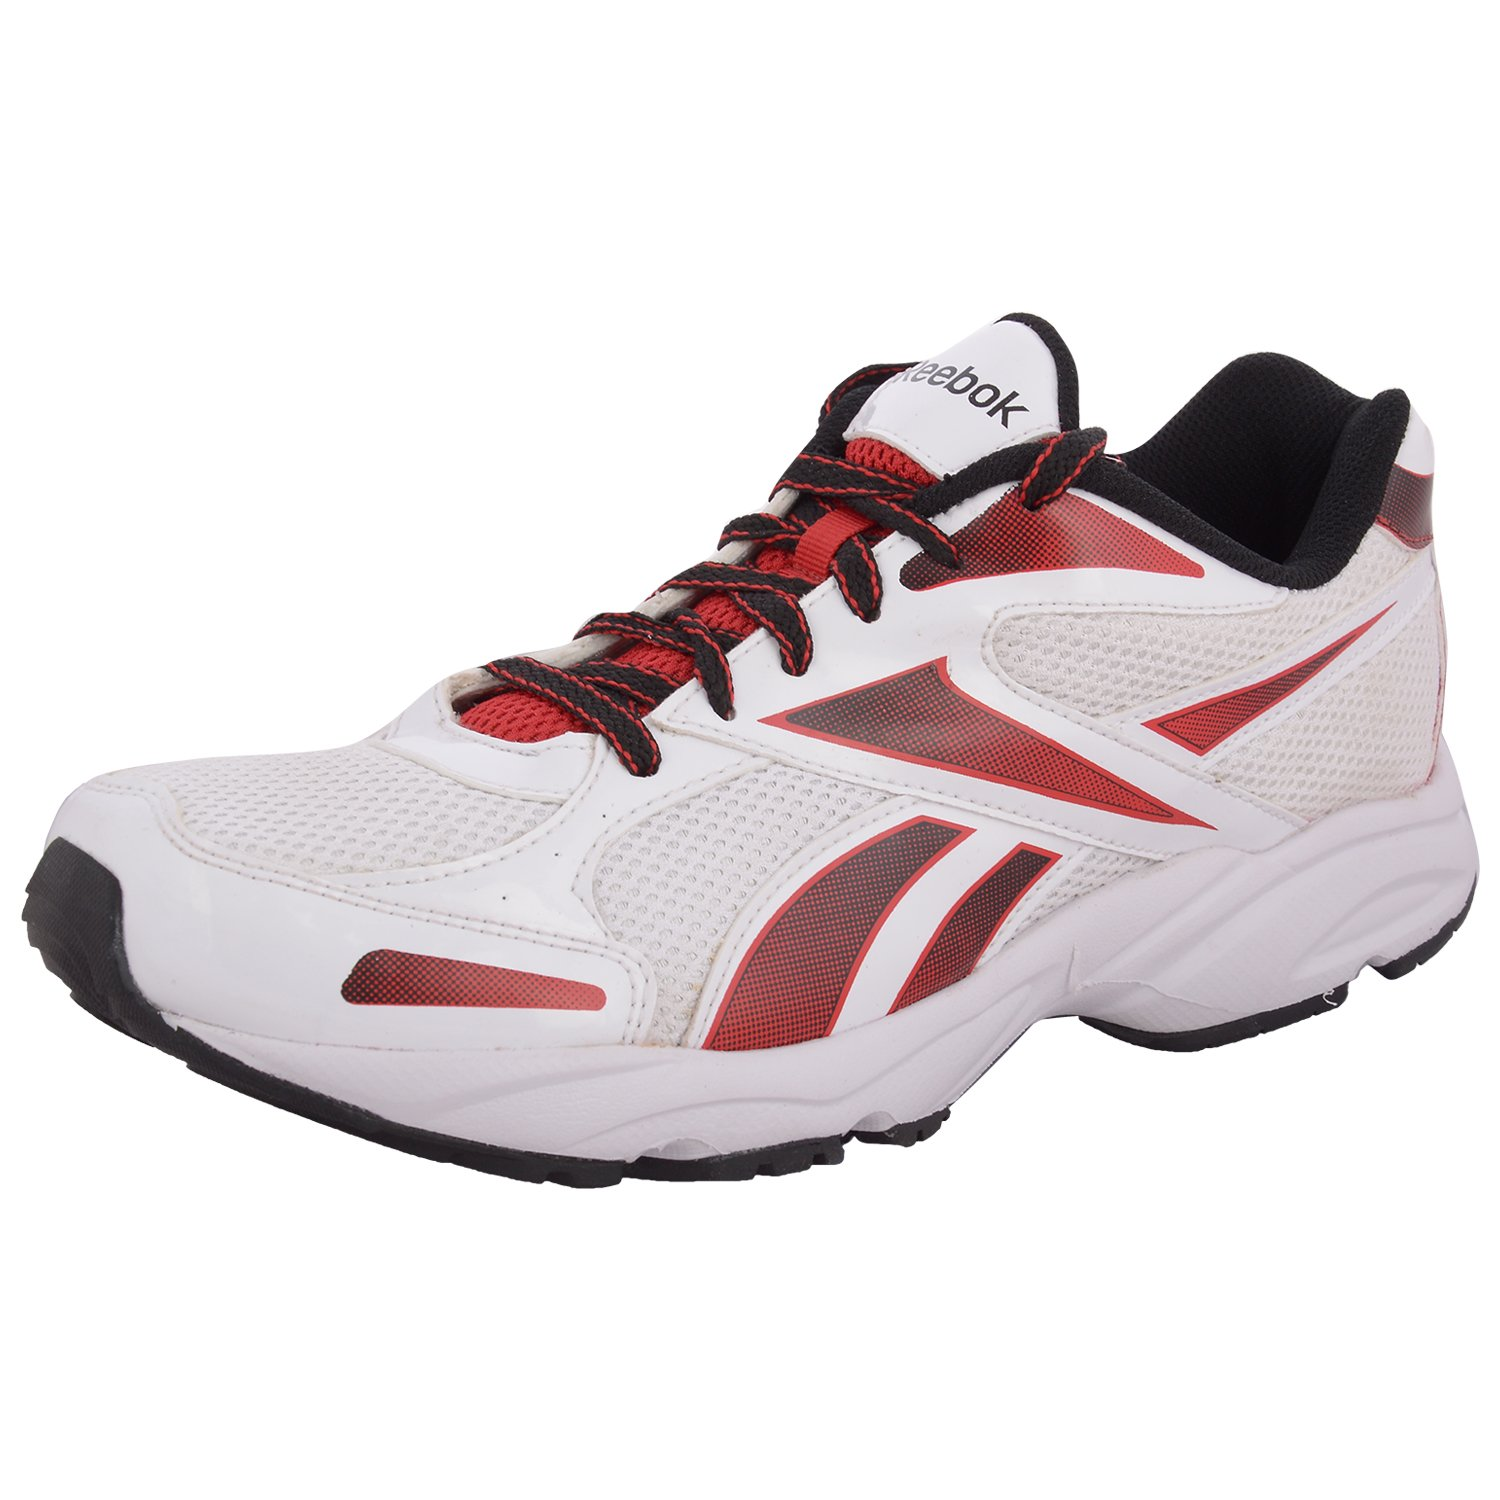 0533be9c60a68 Reebok Men s United Runner IV LP White red Black Mesh Running Shoes - 11  UK  Buy Online at Low Prices in India - Amazon.in